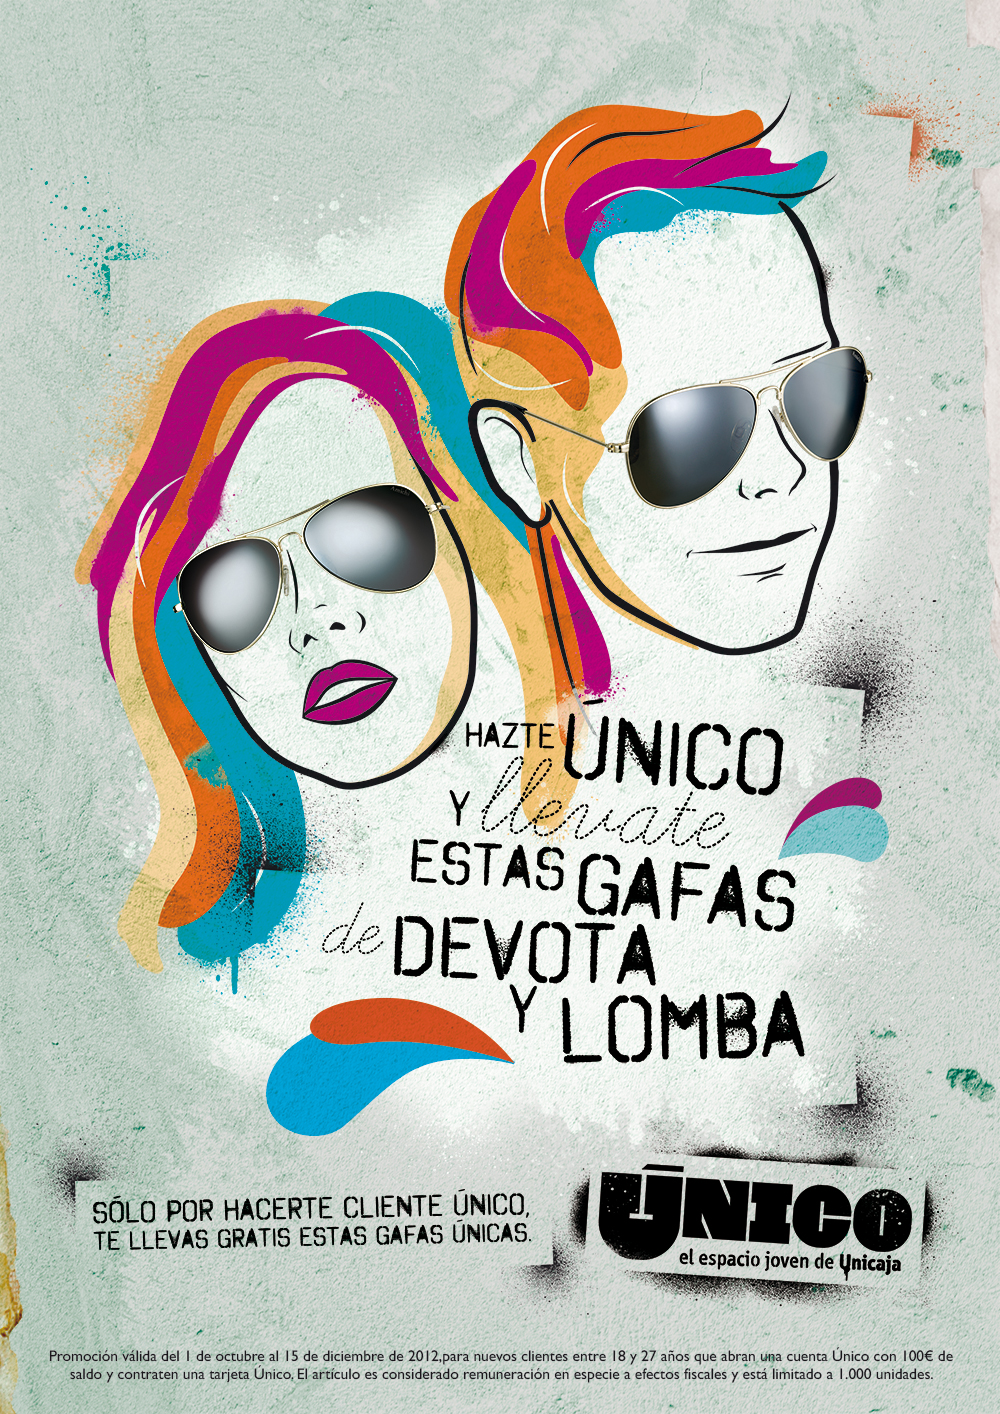 UNICO, a young space of Unicaja (Bank) Promotional campaign poster